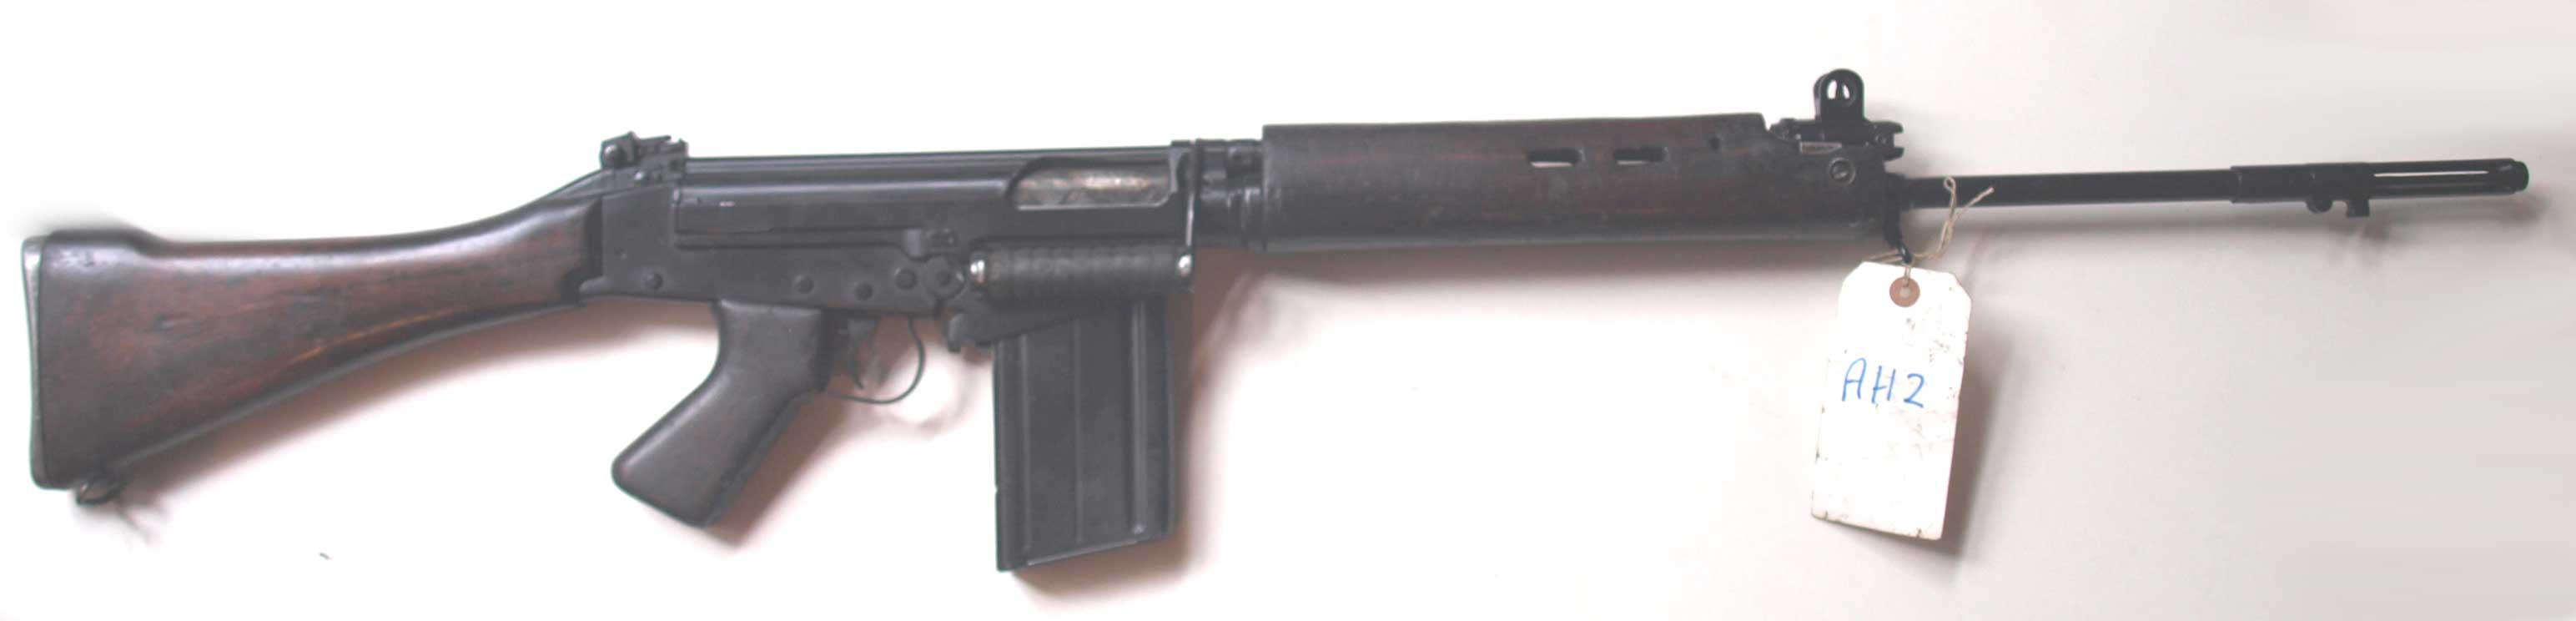 British L1A1 SLR (AH2) Price reduced from £975